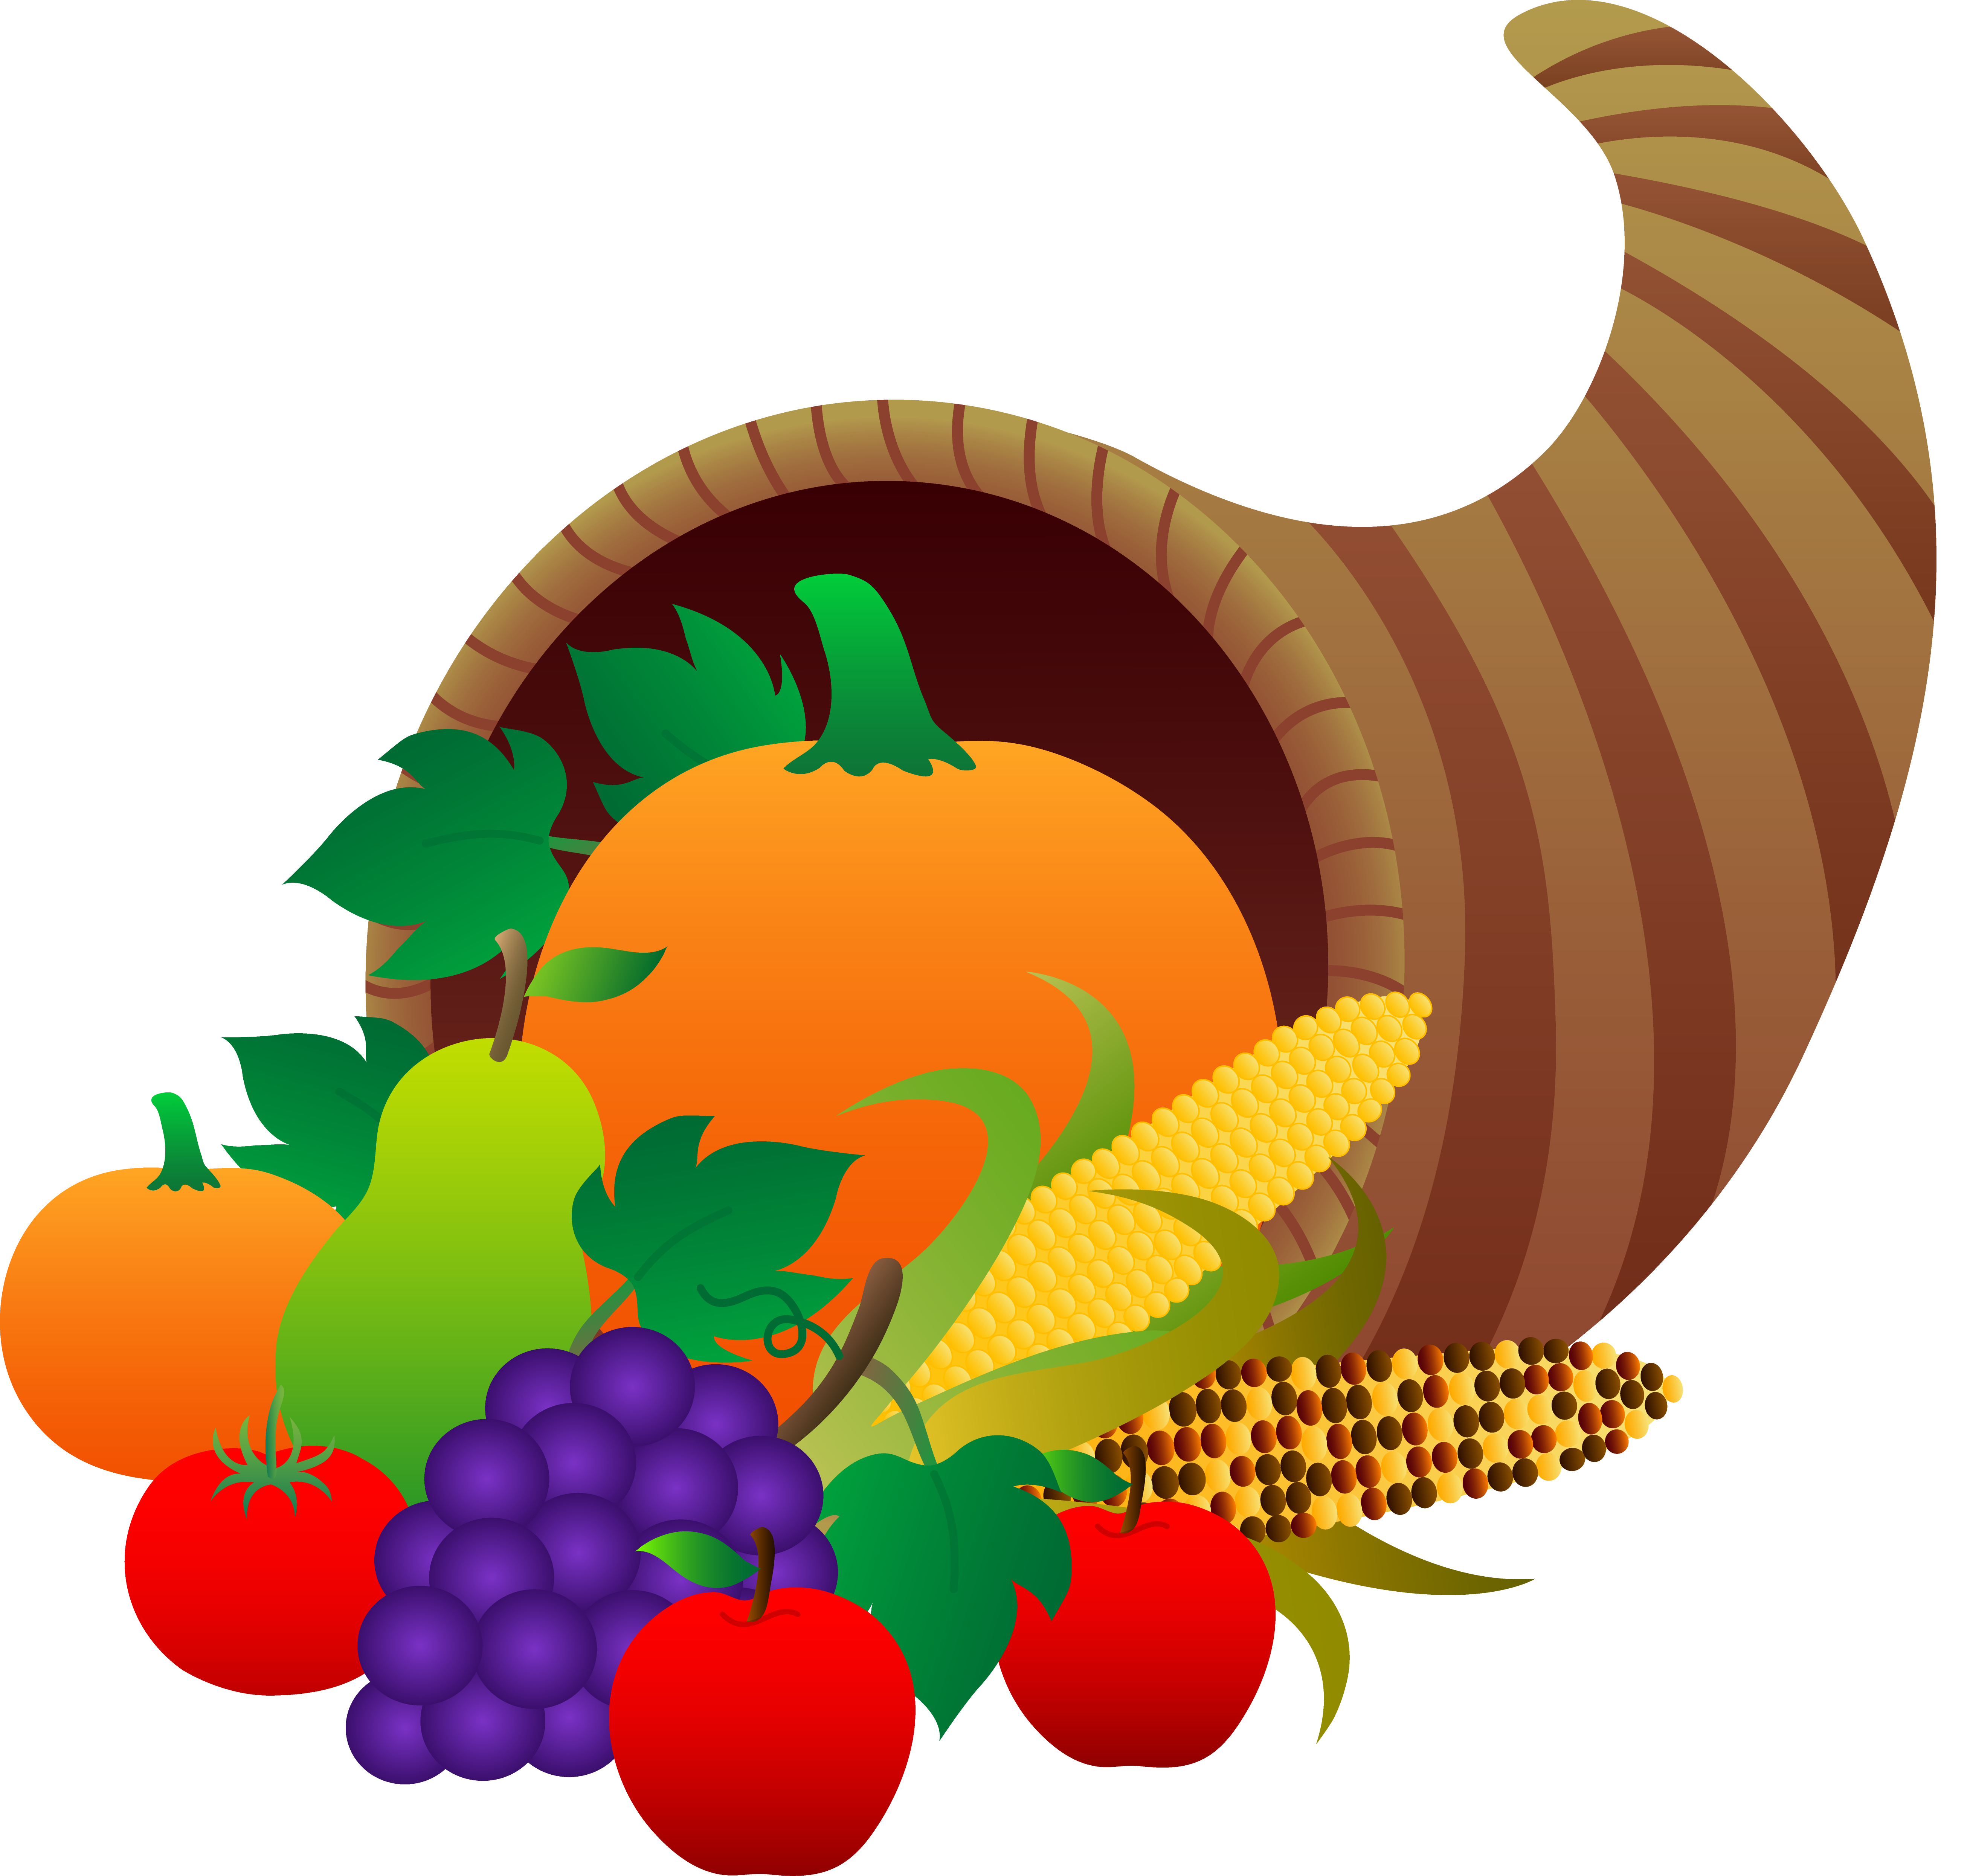 Thanksgiving clipart clear background. Png free icons and